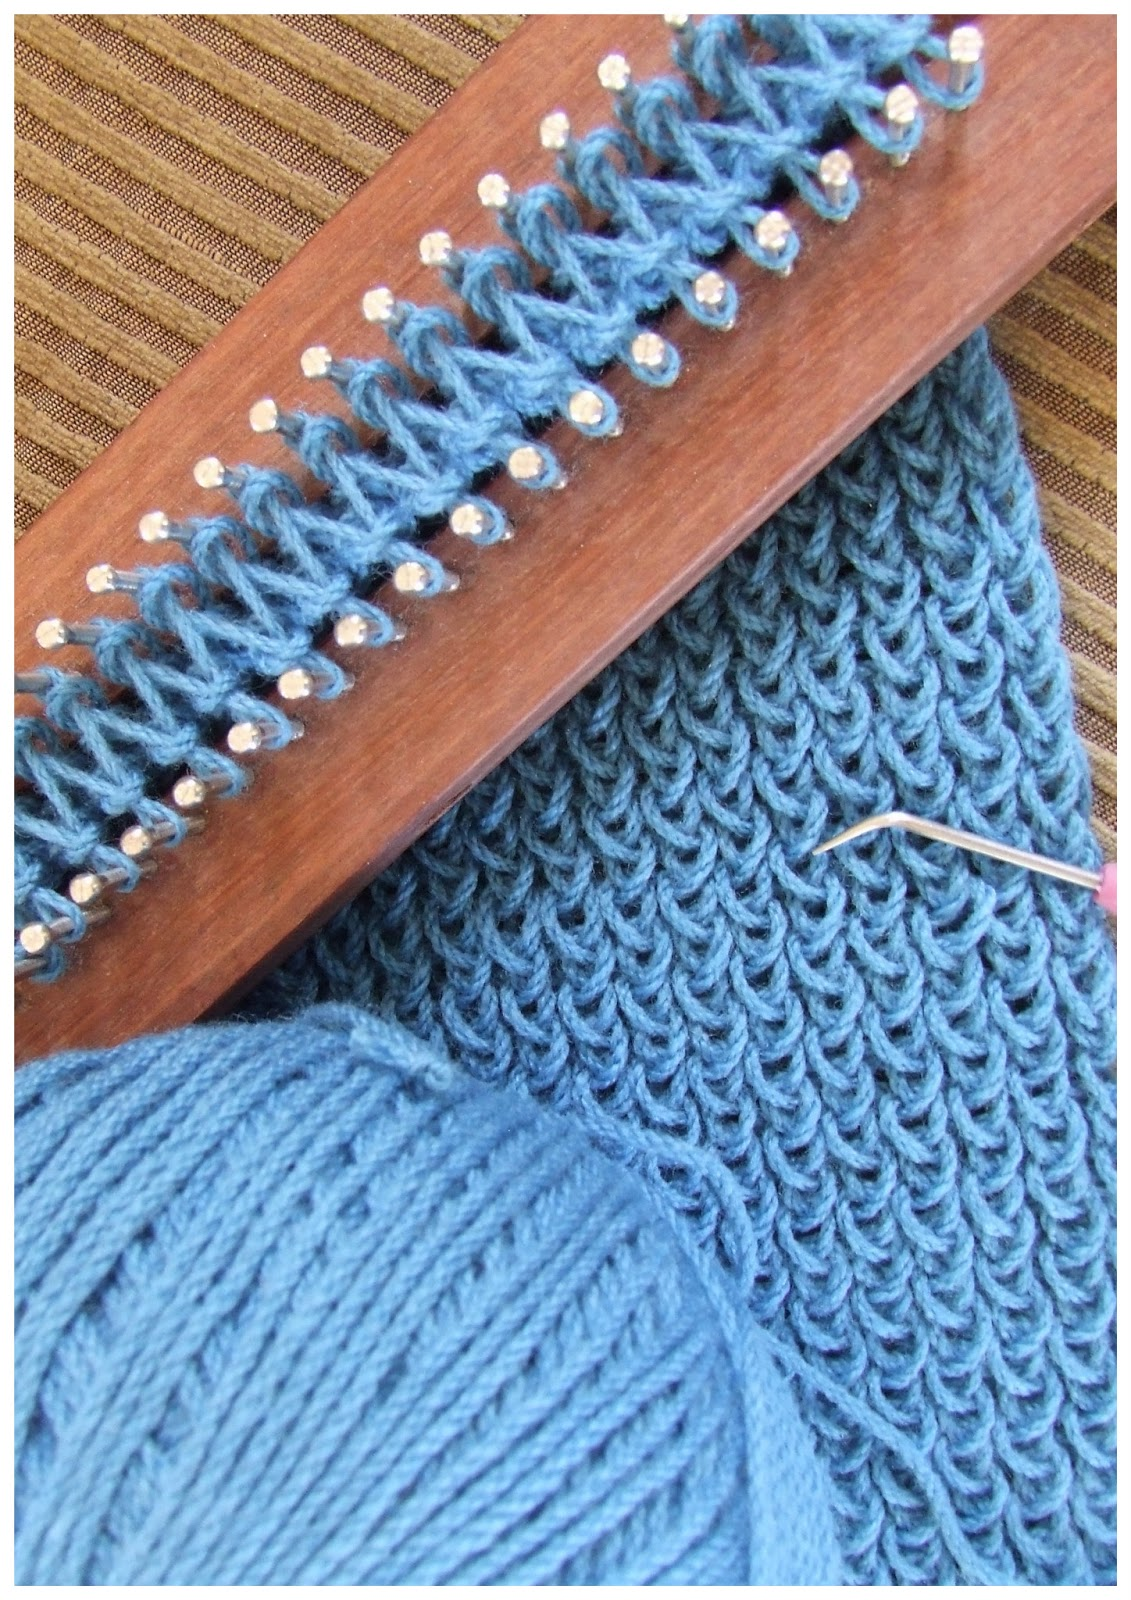 Loom Knitting Patterns : FitzBirch Crafts: Loom Knitting